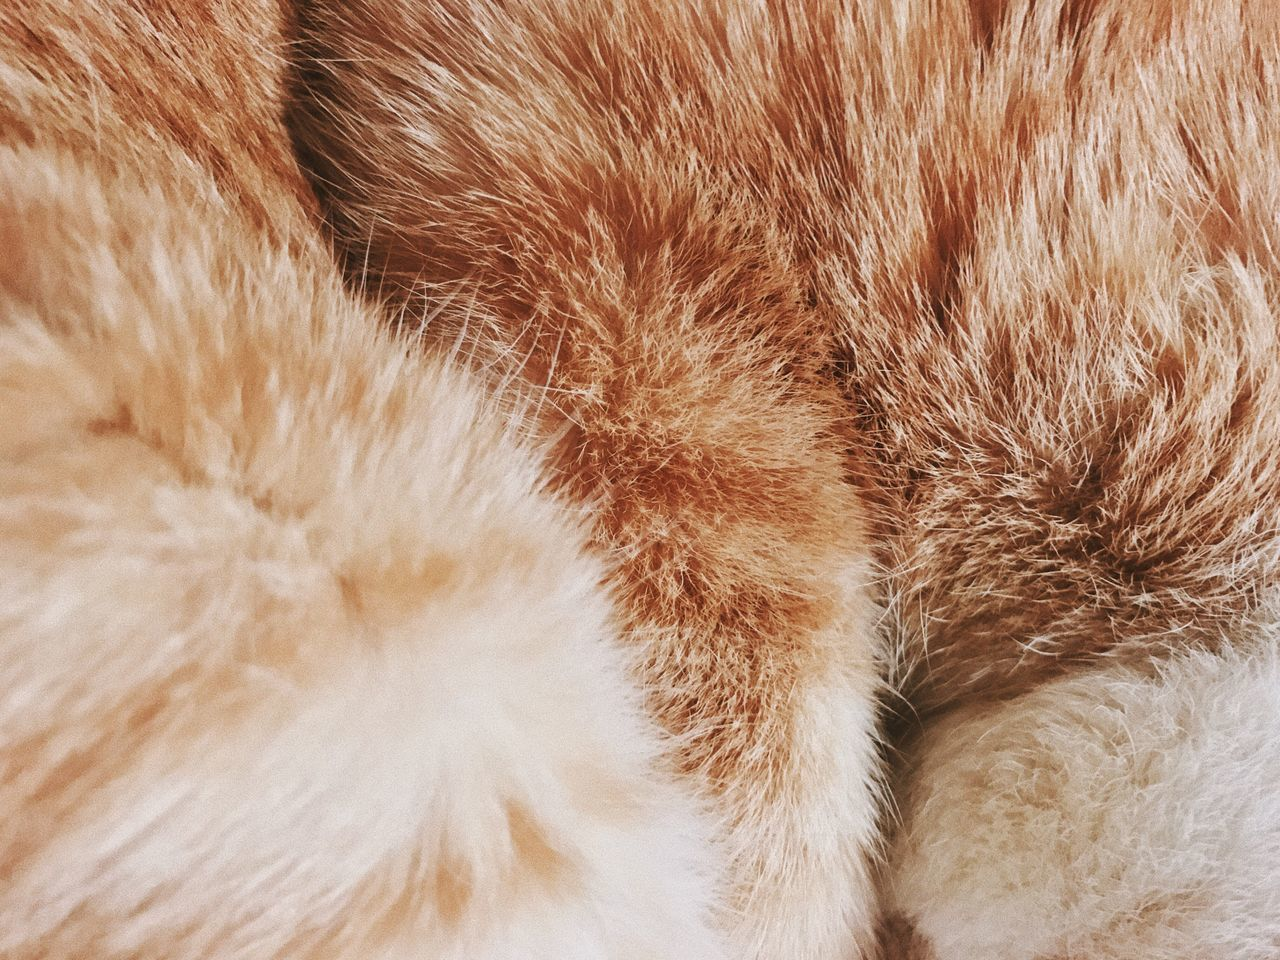 domestic cat, backgrounds, indoors, pets, animal leg, no people, close-up, mammal, feline, domestic animals, paw, animal themes, pattern, full frame, one animal, day, nature